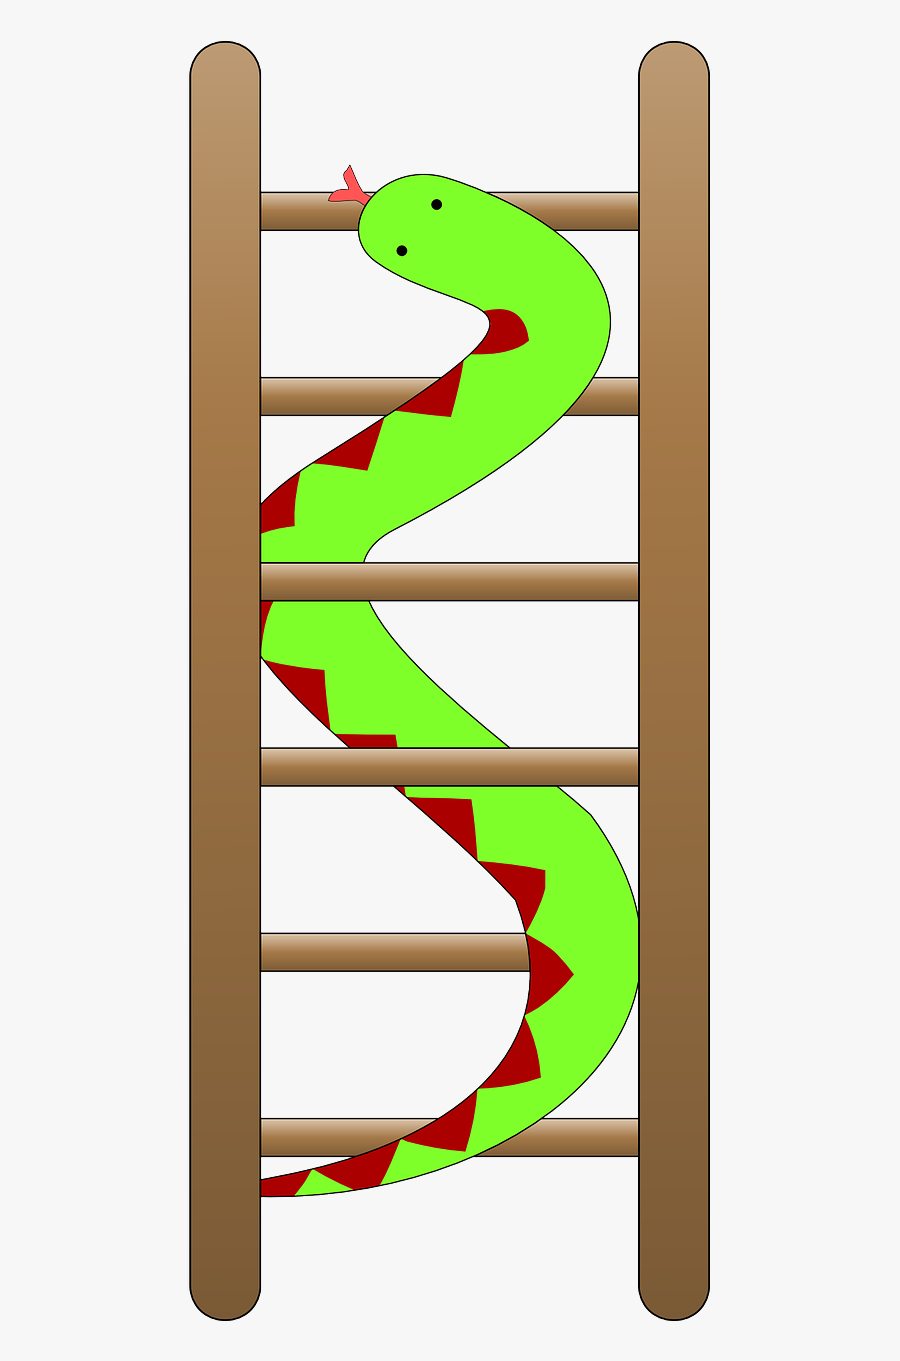 Snake Ladder Green Free Photo - Snakes And Ladders Clipart, Transparent Clipart